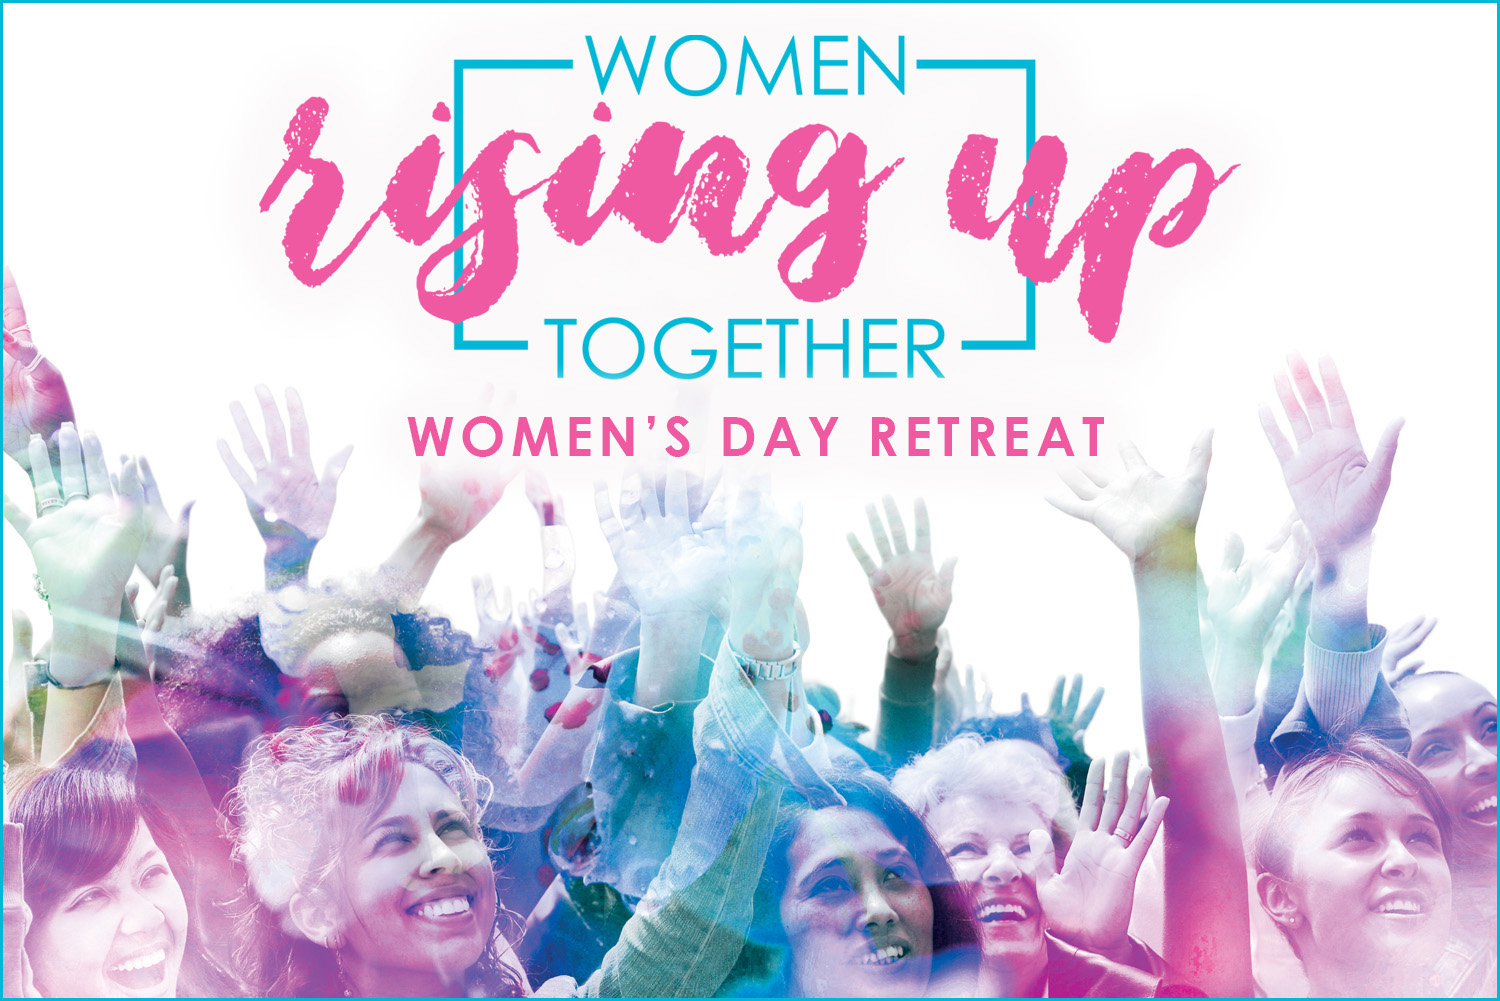 WomensRetreat_Event.jpg